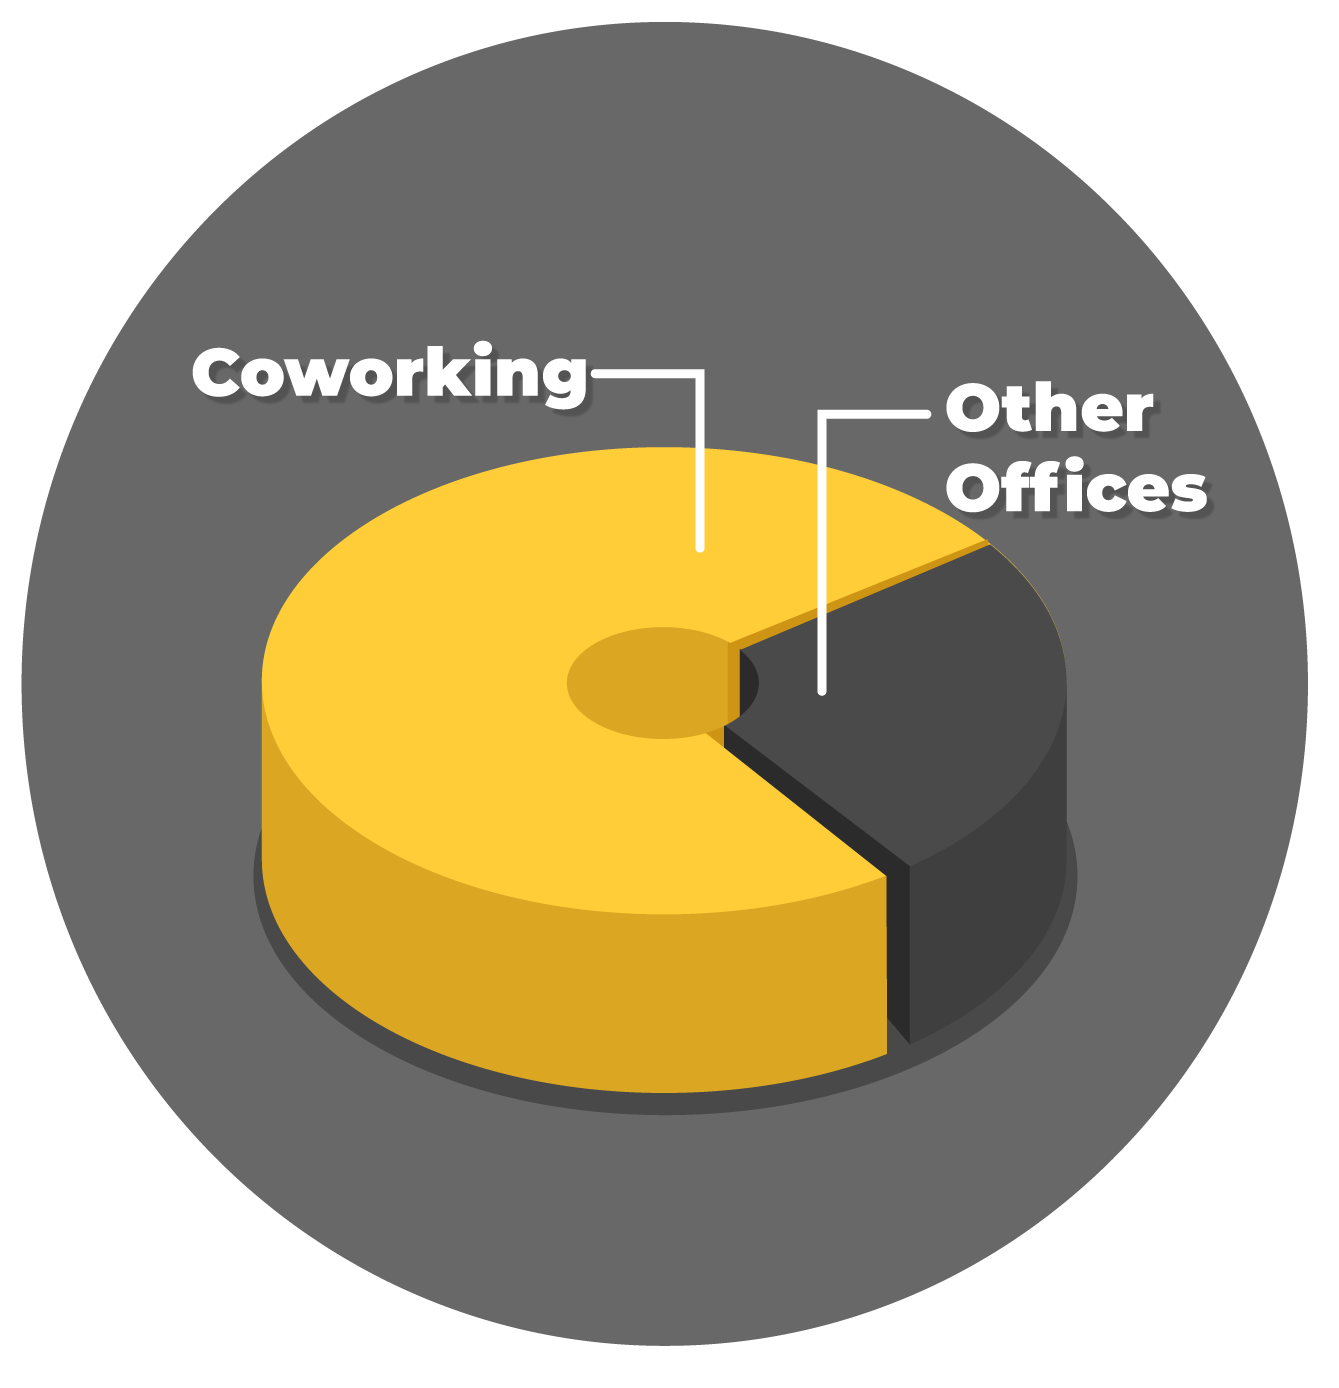 Current coworking market size